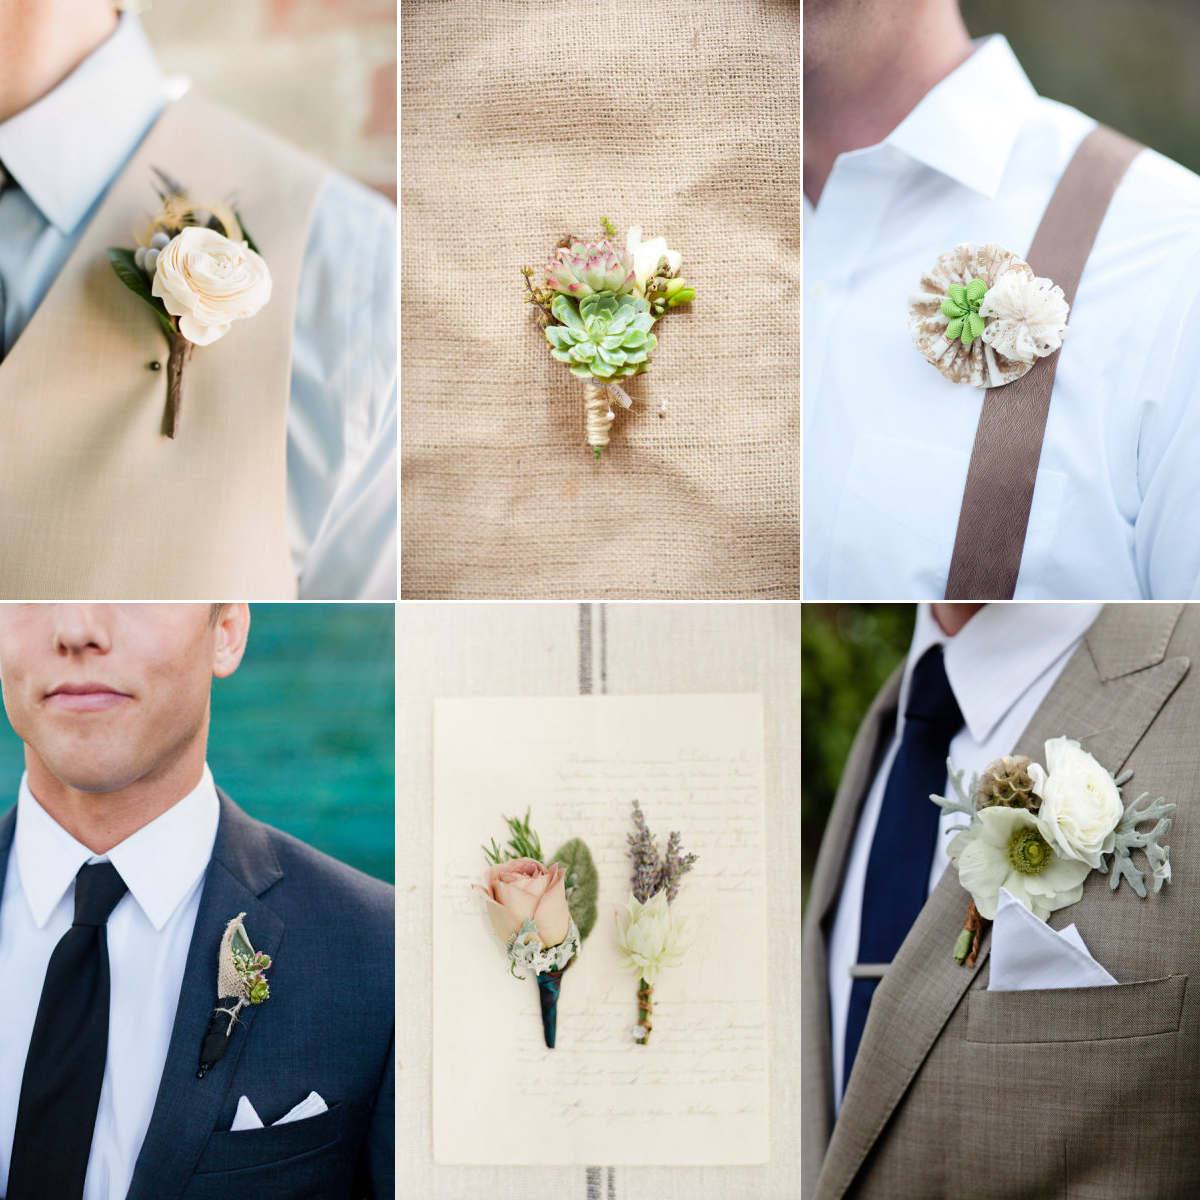 Elegant-wedding-flowers-neutral-grooms-boutonnieres.original